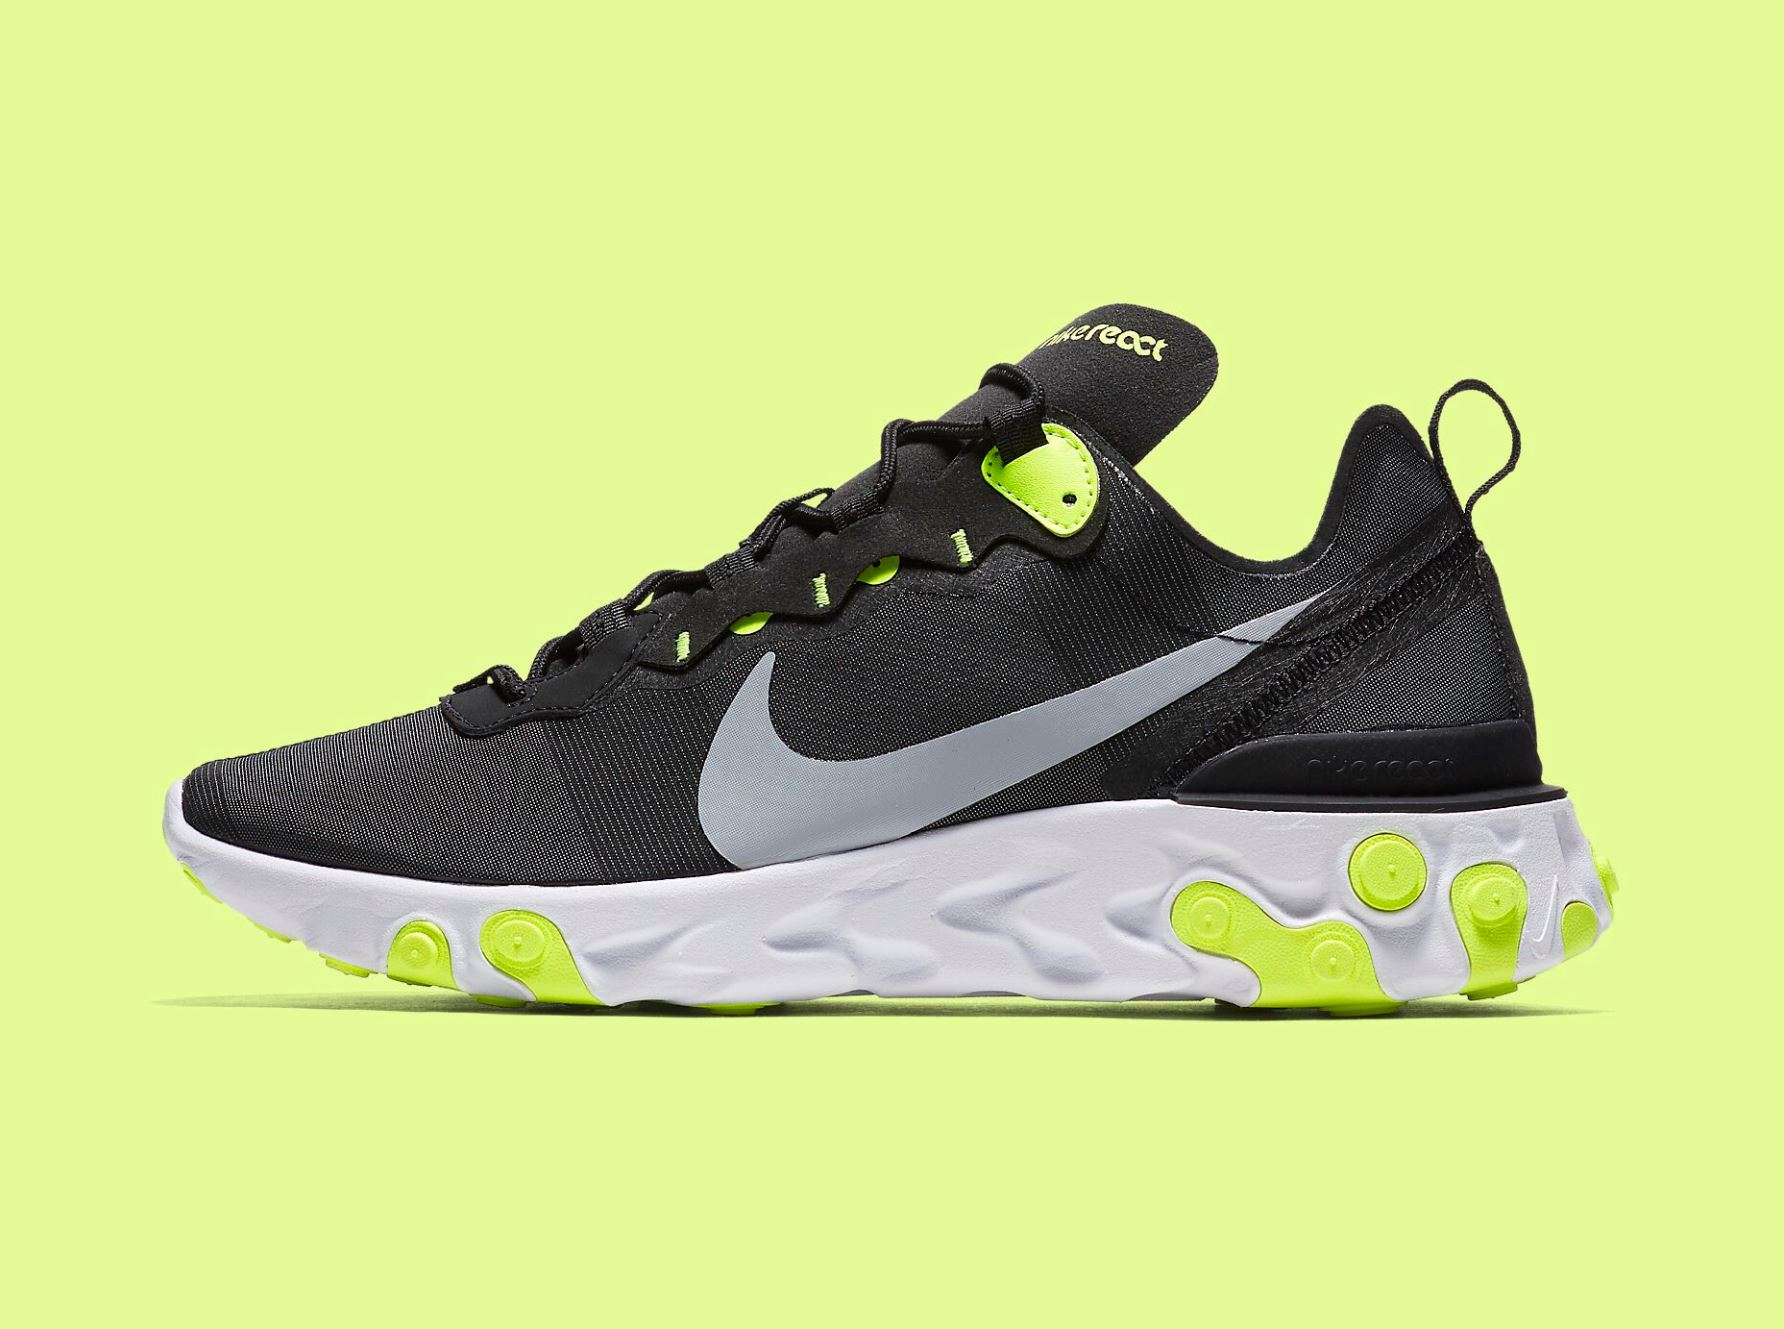 88ad9d2269f Nike React Element 55 Release Date Pushed Back - WearTesters